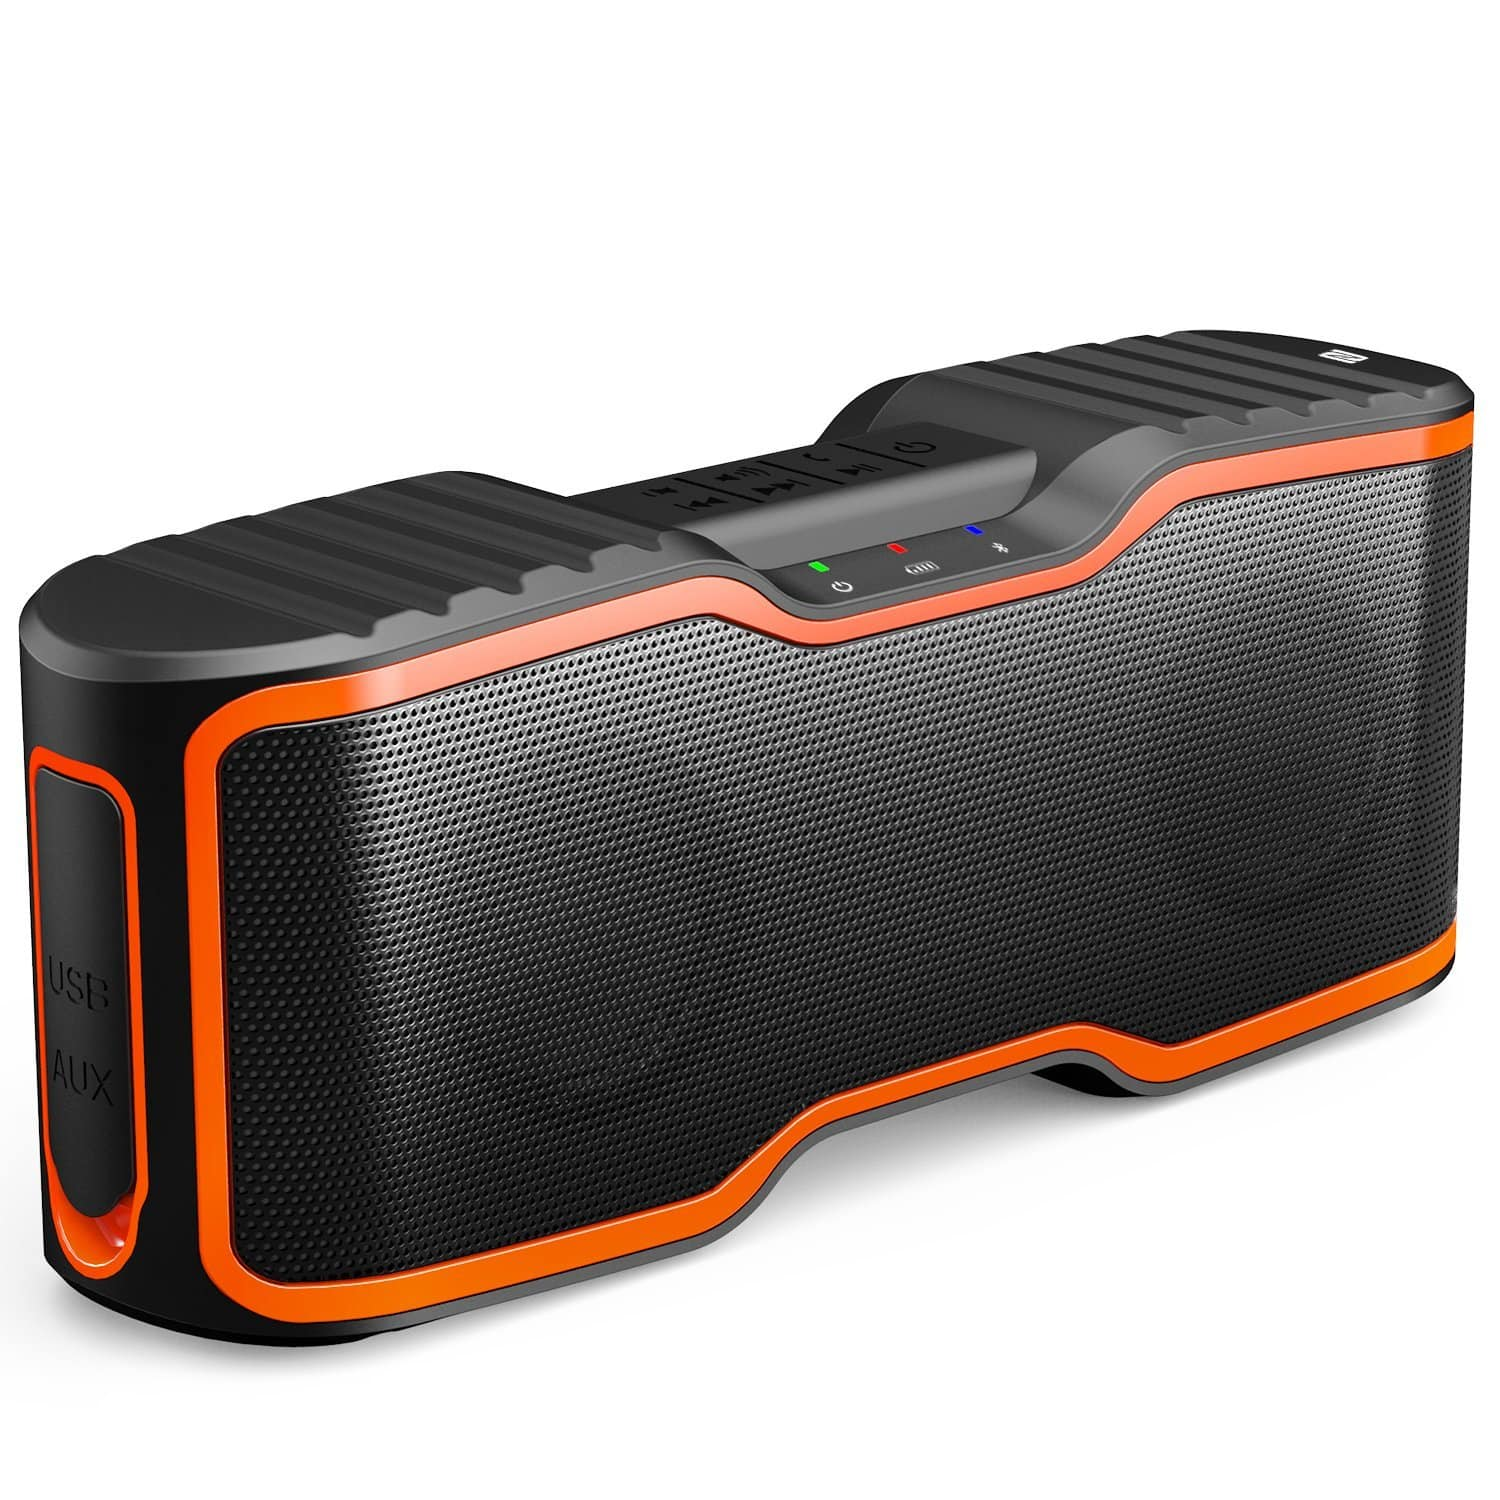 AOMAIS Waterproof Bluetooth Speaker IPX7 20W $23.99 @Amazon